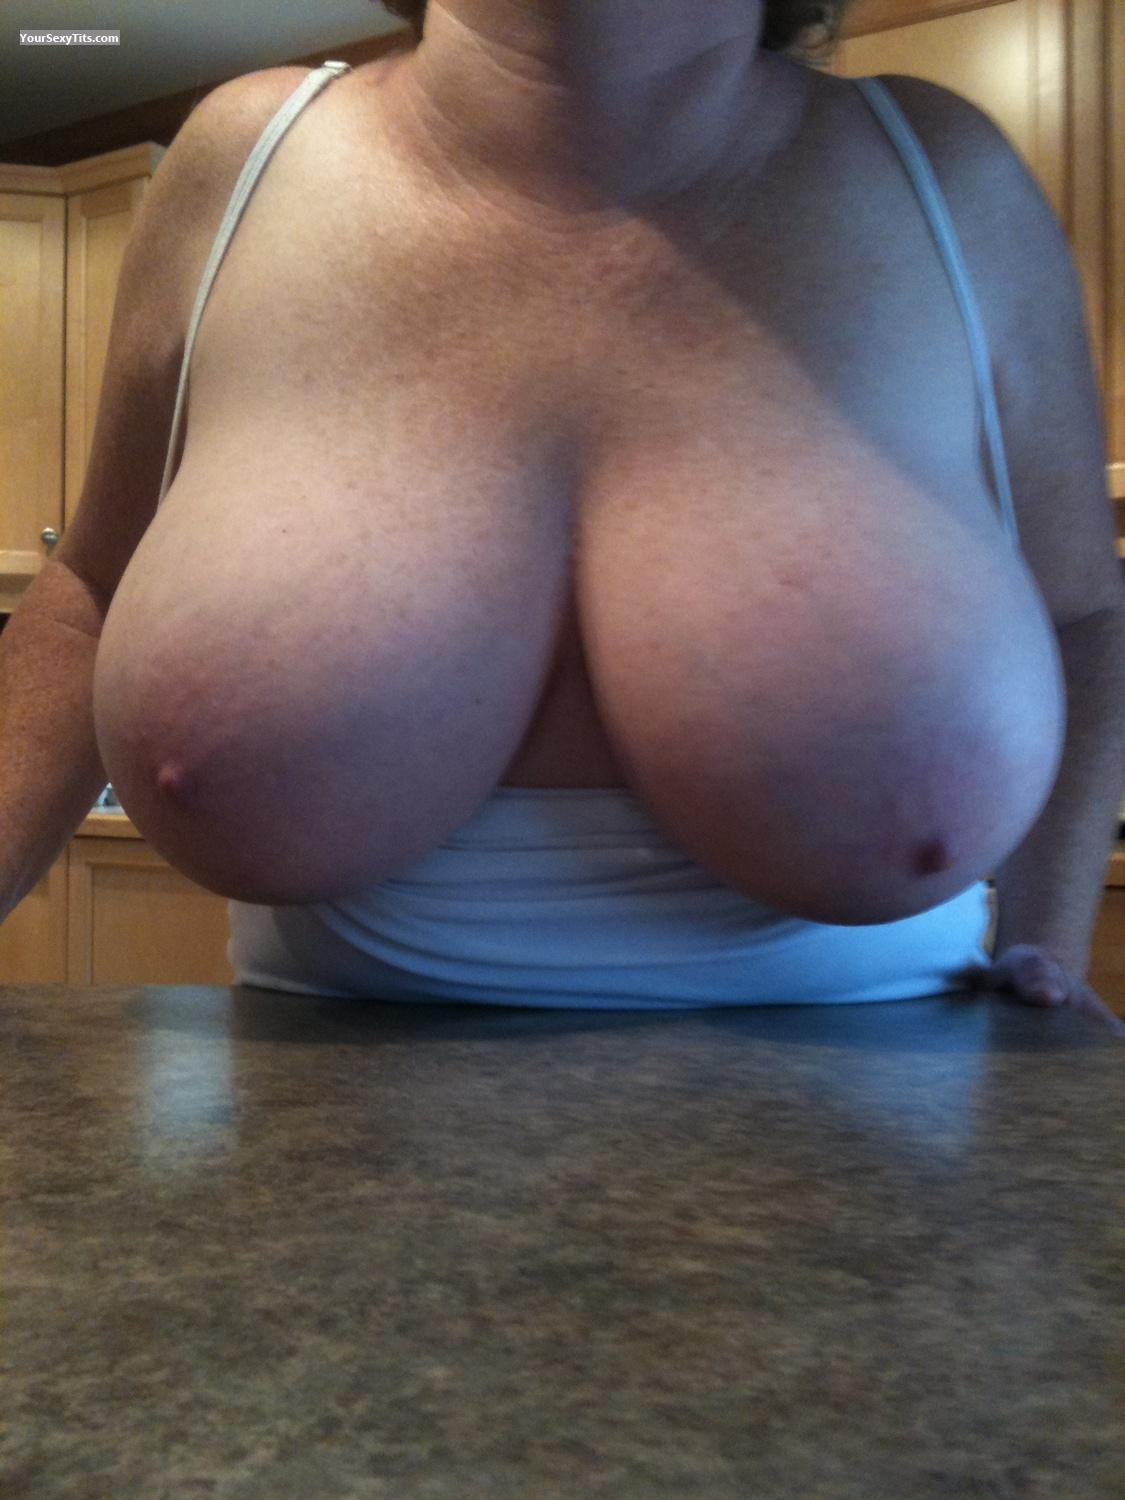 Very big Tits Canada's Finest